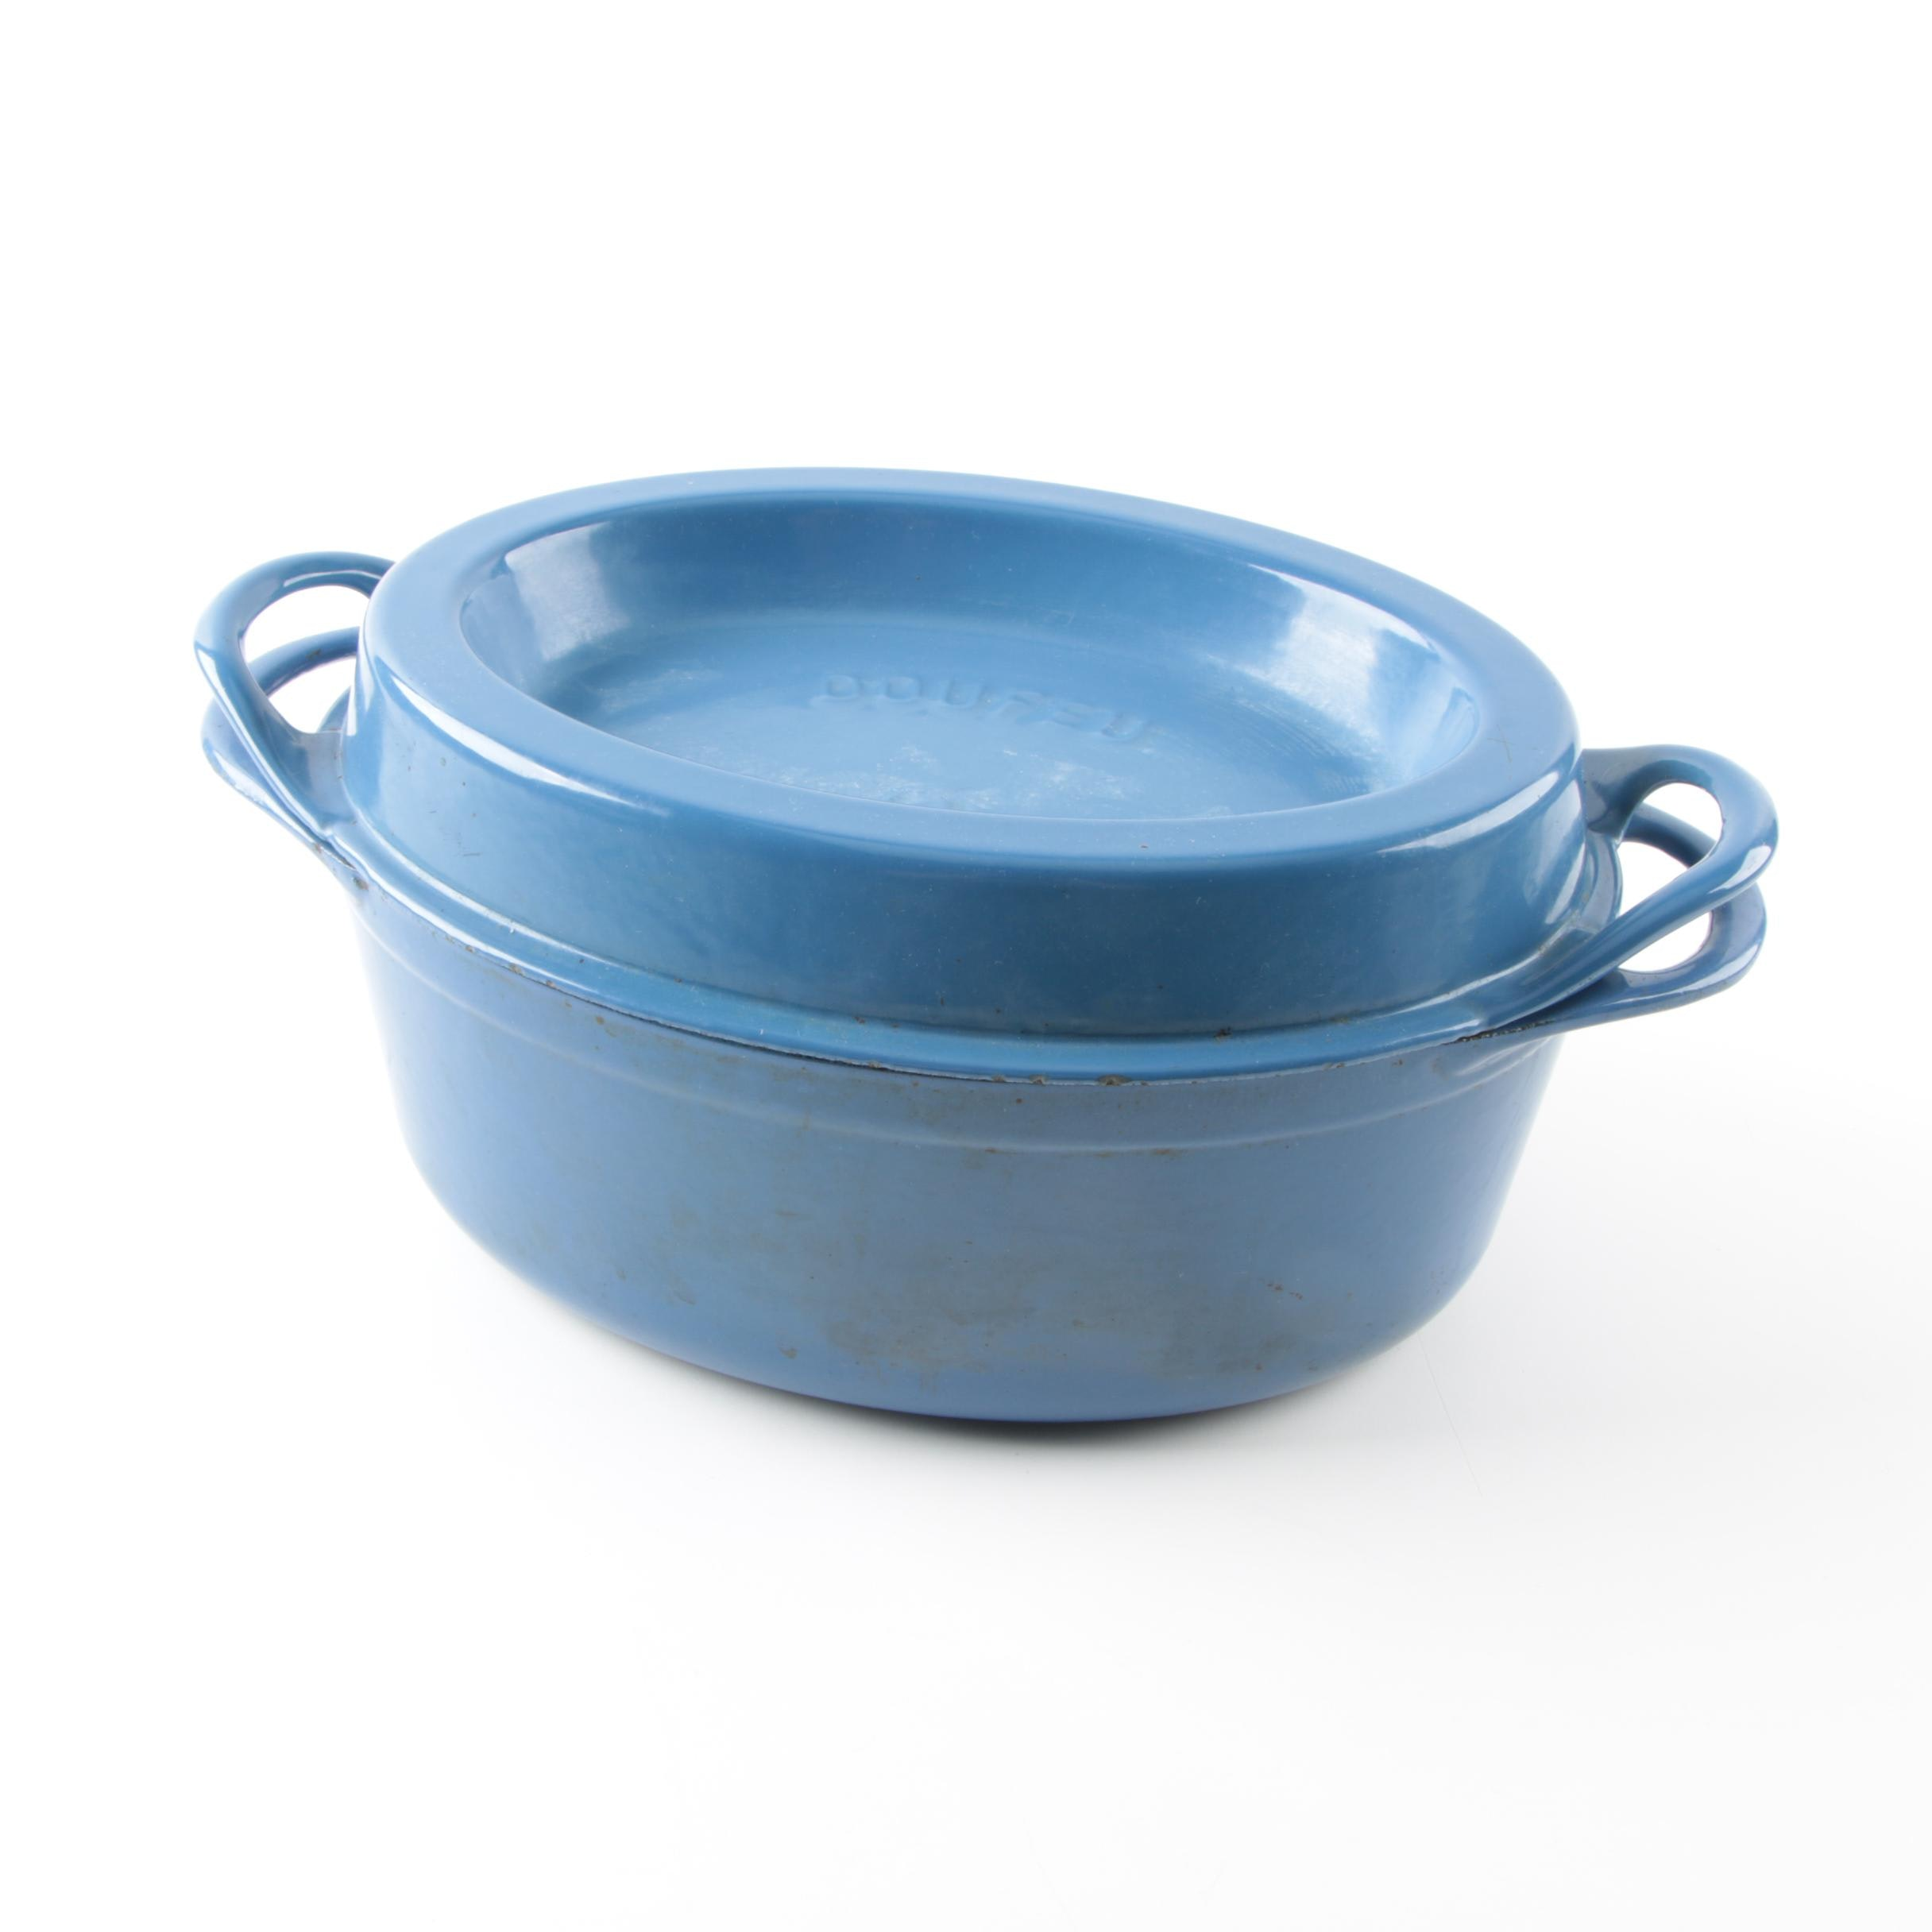 "Le Creuset ""Doufeu"" Enameled Cast Iron Dutch Oven with Lid"